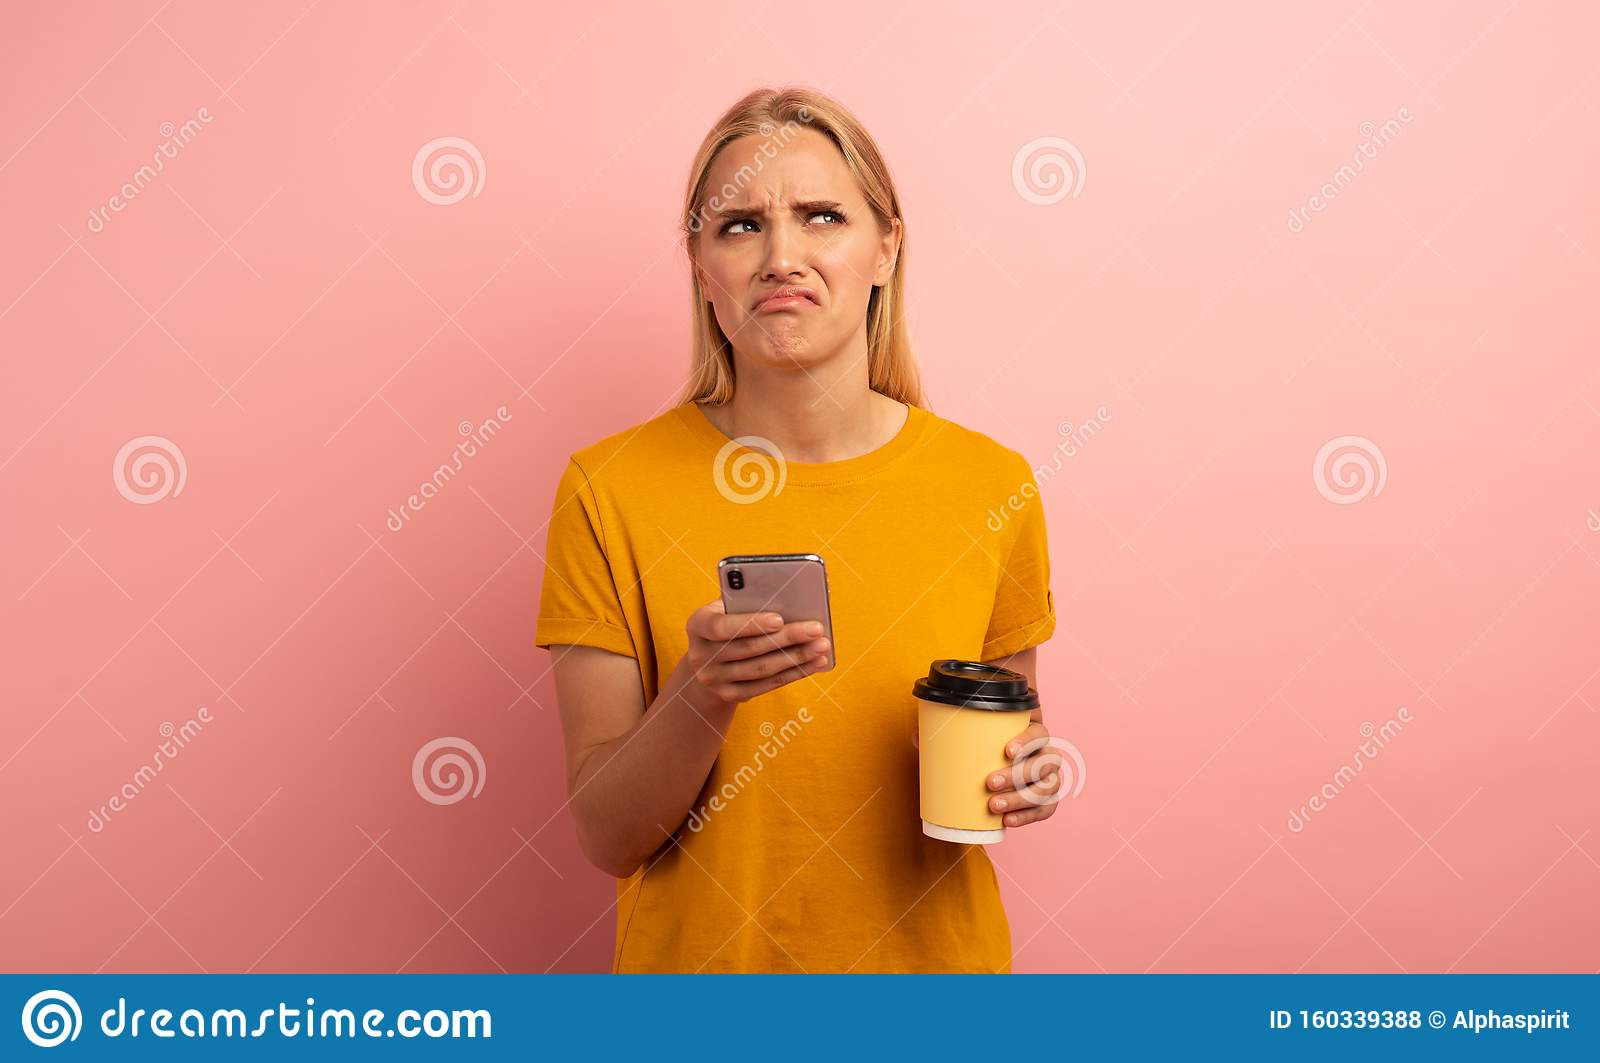 Blonde girl thinks about the right option. Yes or no. Confused and pensive expression. Pink background